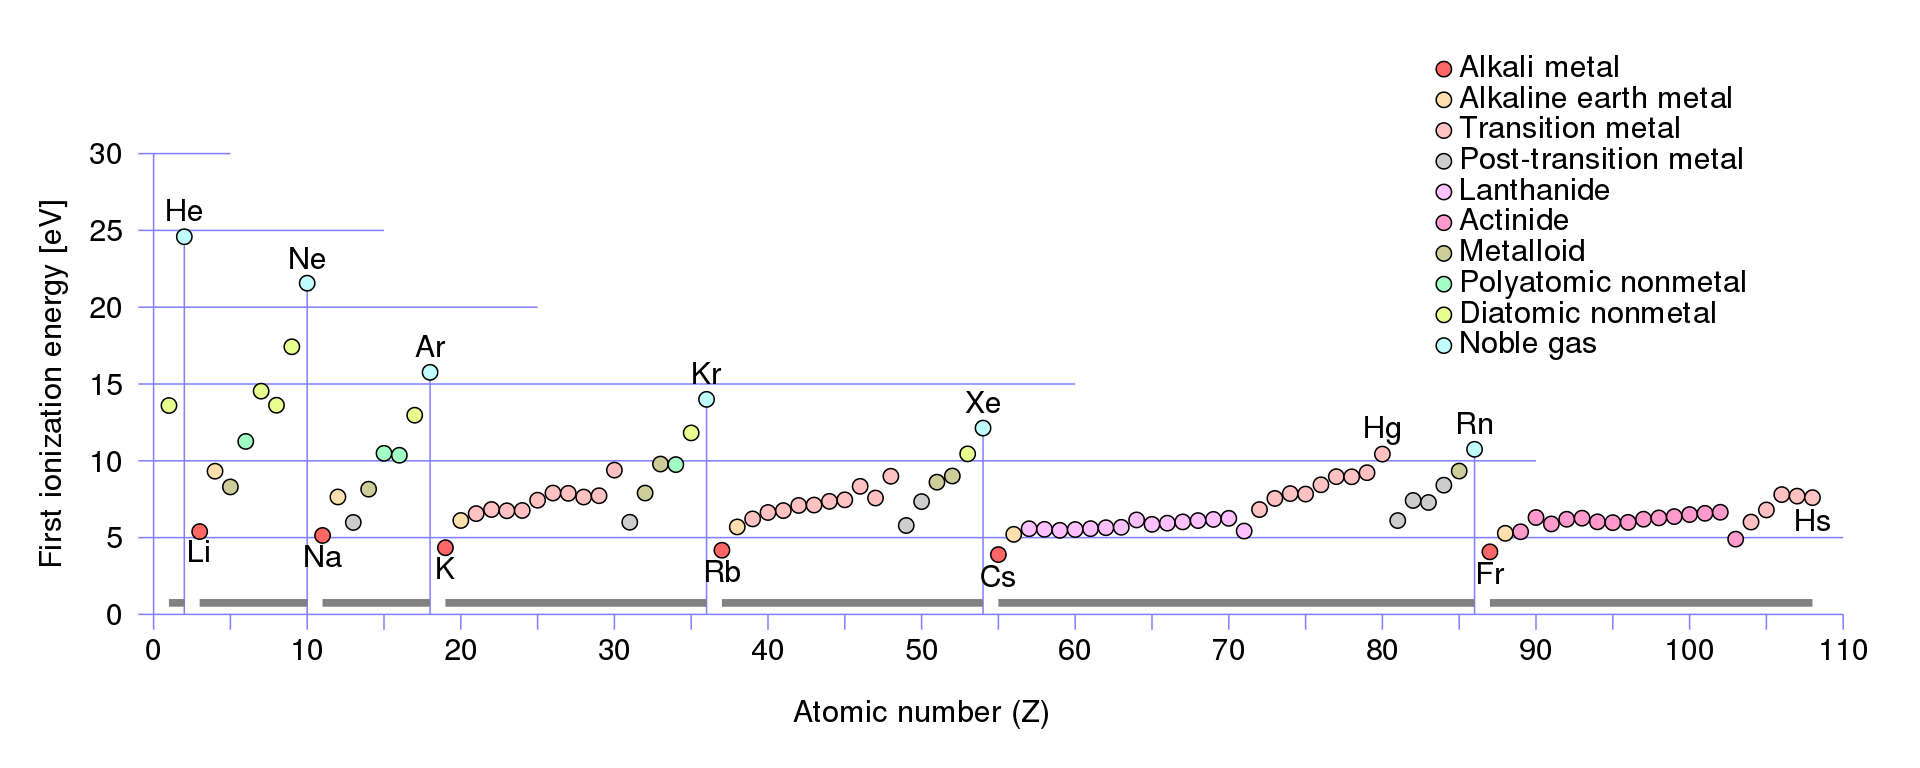 Difference Between Electronegativity And Ionization Energy